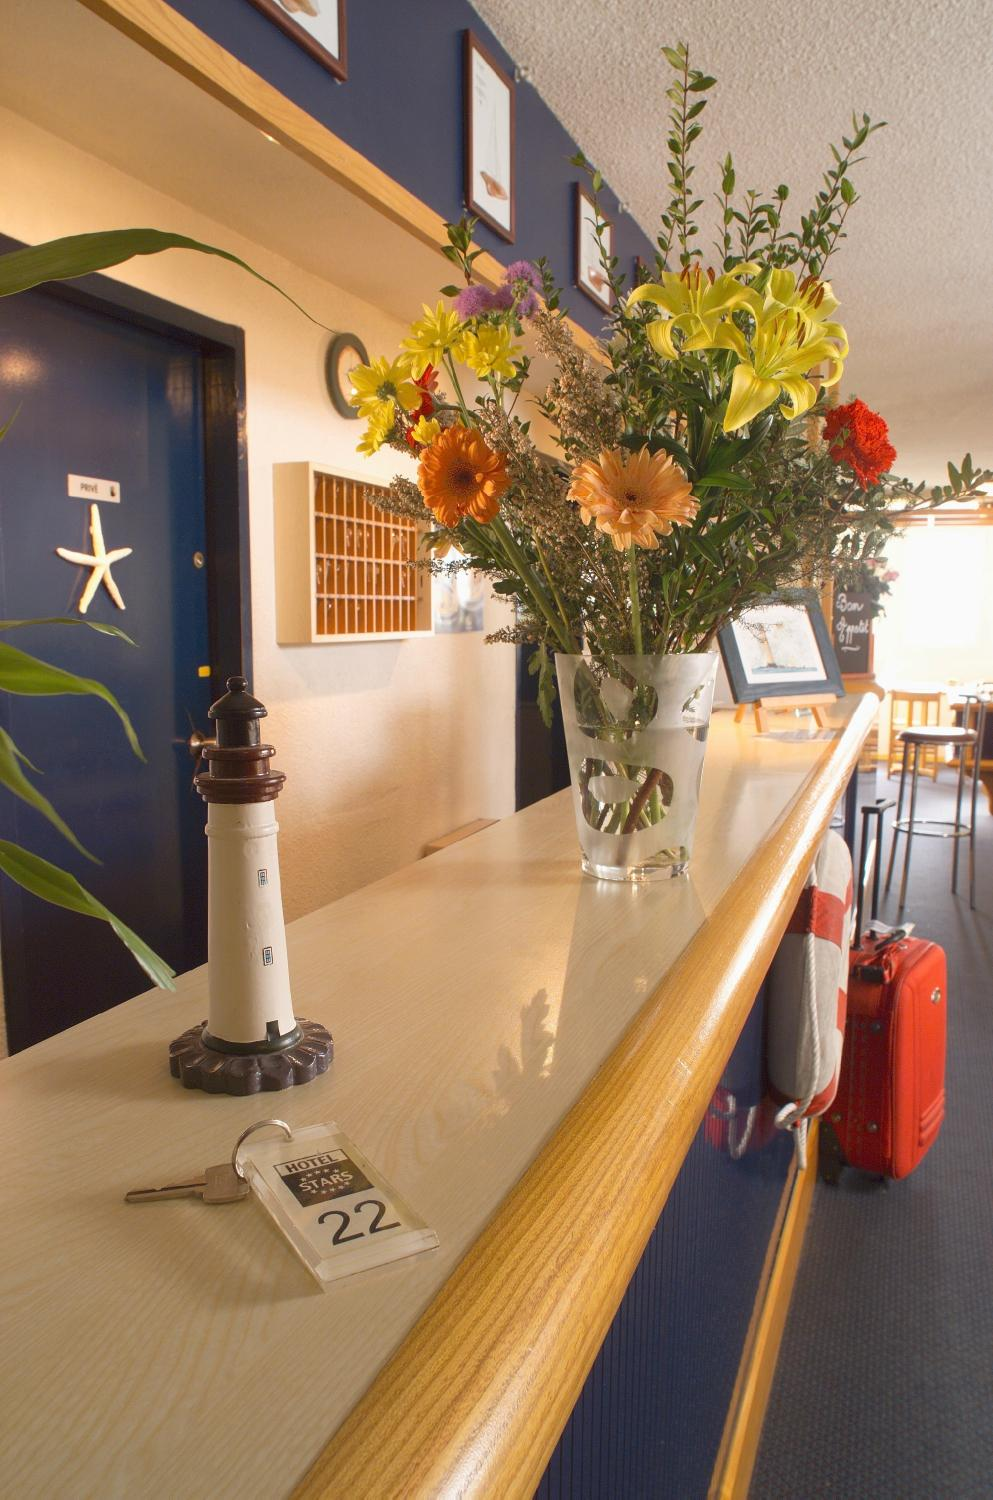 Hotel stars antibes (france)   photos & reviews   tripadvisor